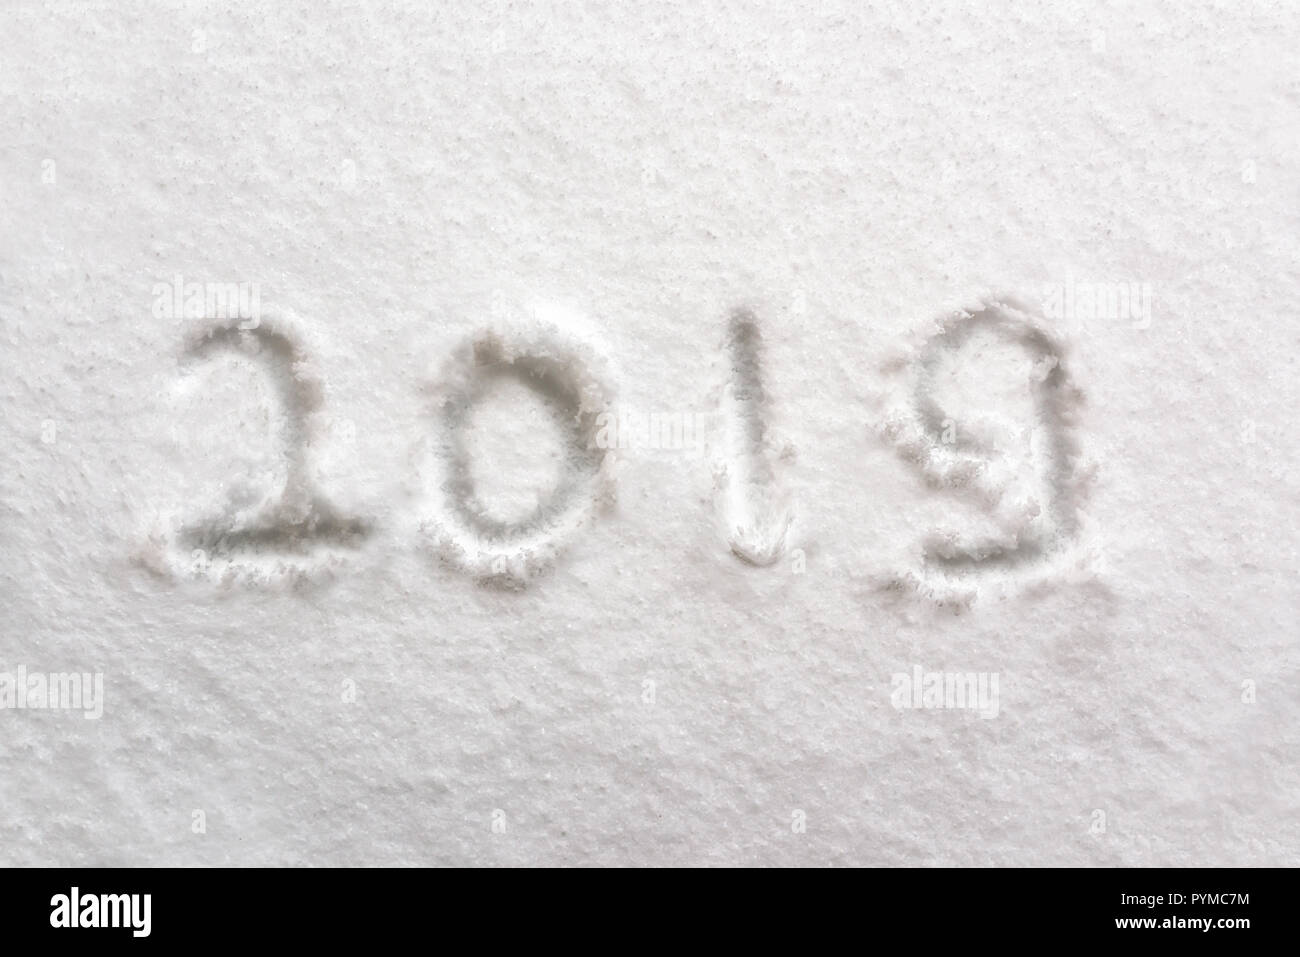 2019 written in the snow, holiday background - Stock Image